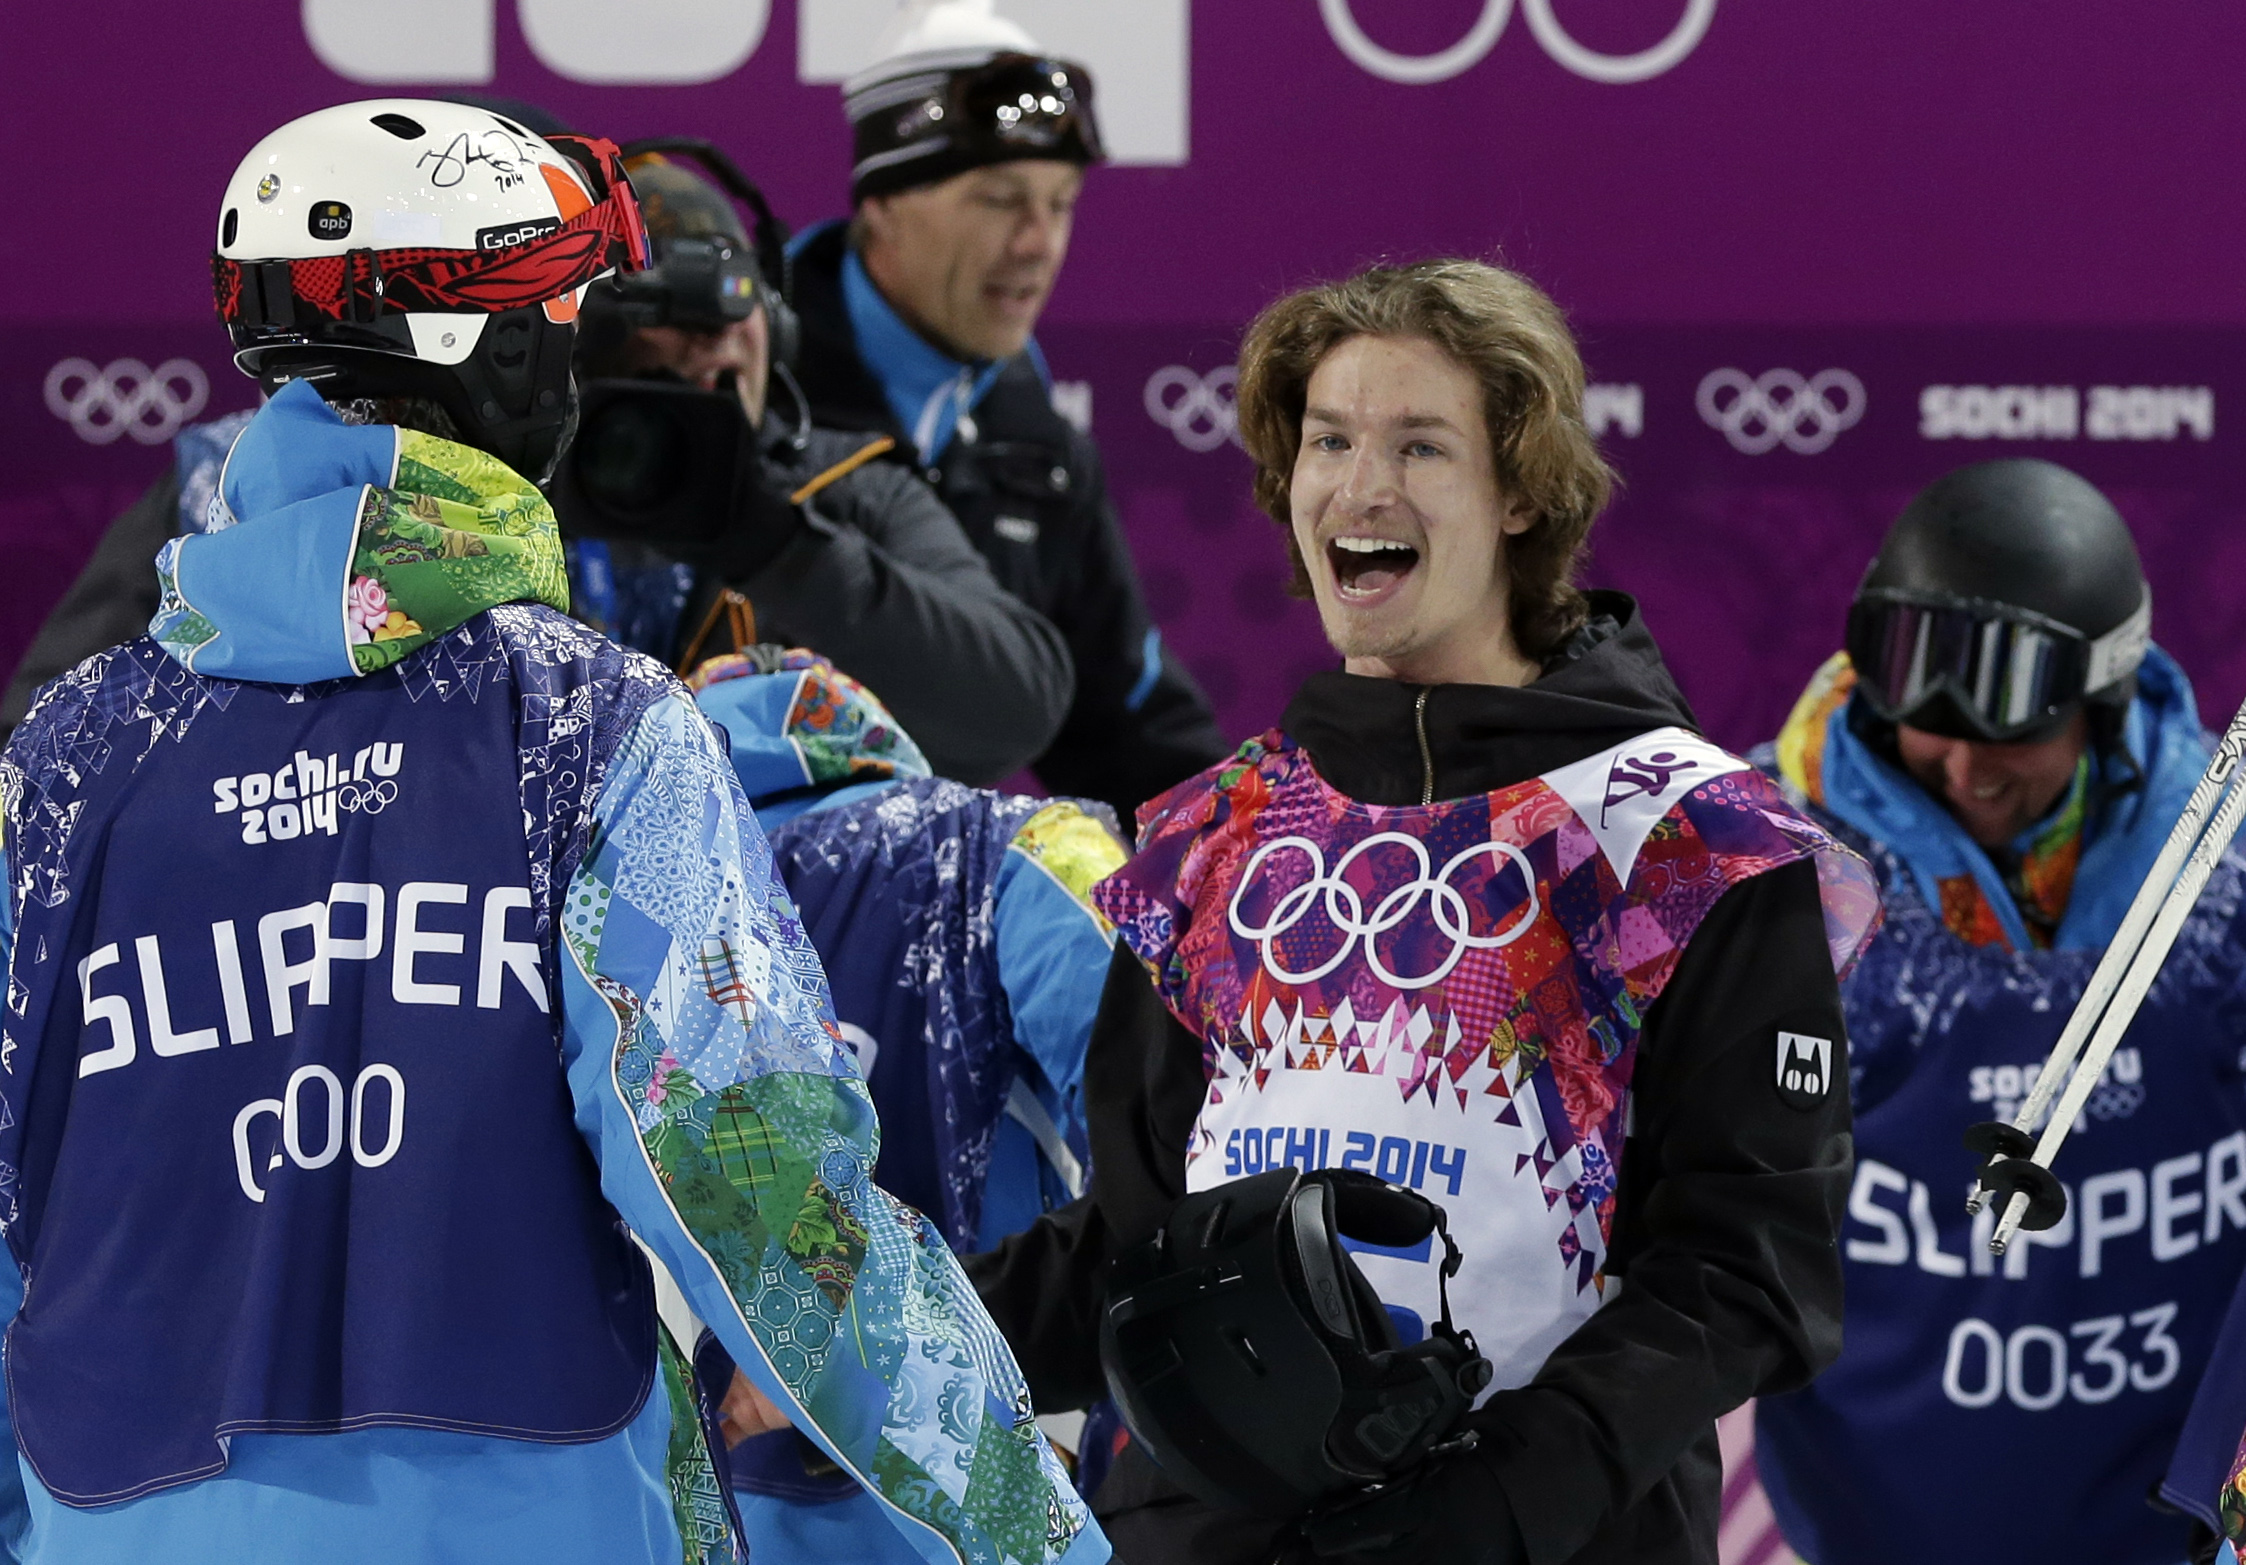 Switzerland's Iouri Podladtchikov celebrates after his half pipe run during the men's snowboard halfpipe final at the Rosa Khutor Extreme Park, at the 2014 Winter Olympics, Tuesday, Feb. 11, 2014, in Krasnaya Polyana, Russia. Podladtchikov won the gold medal. (AP Photo/Andy Wong)